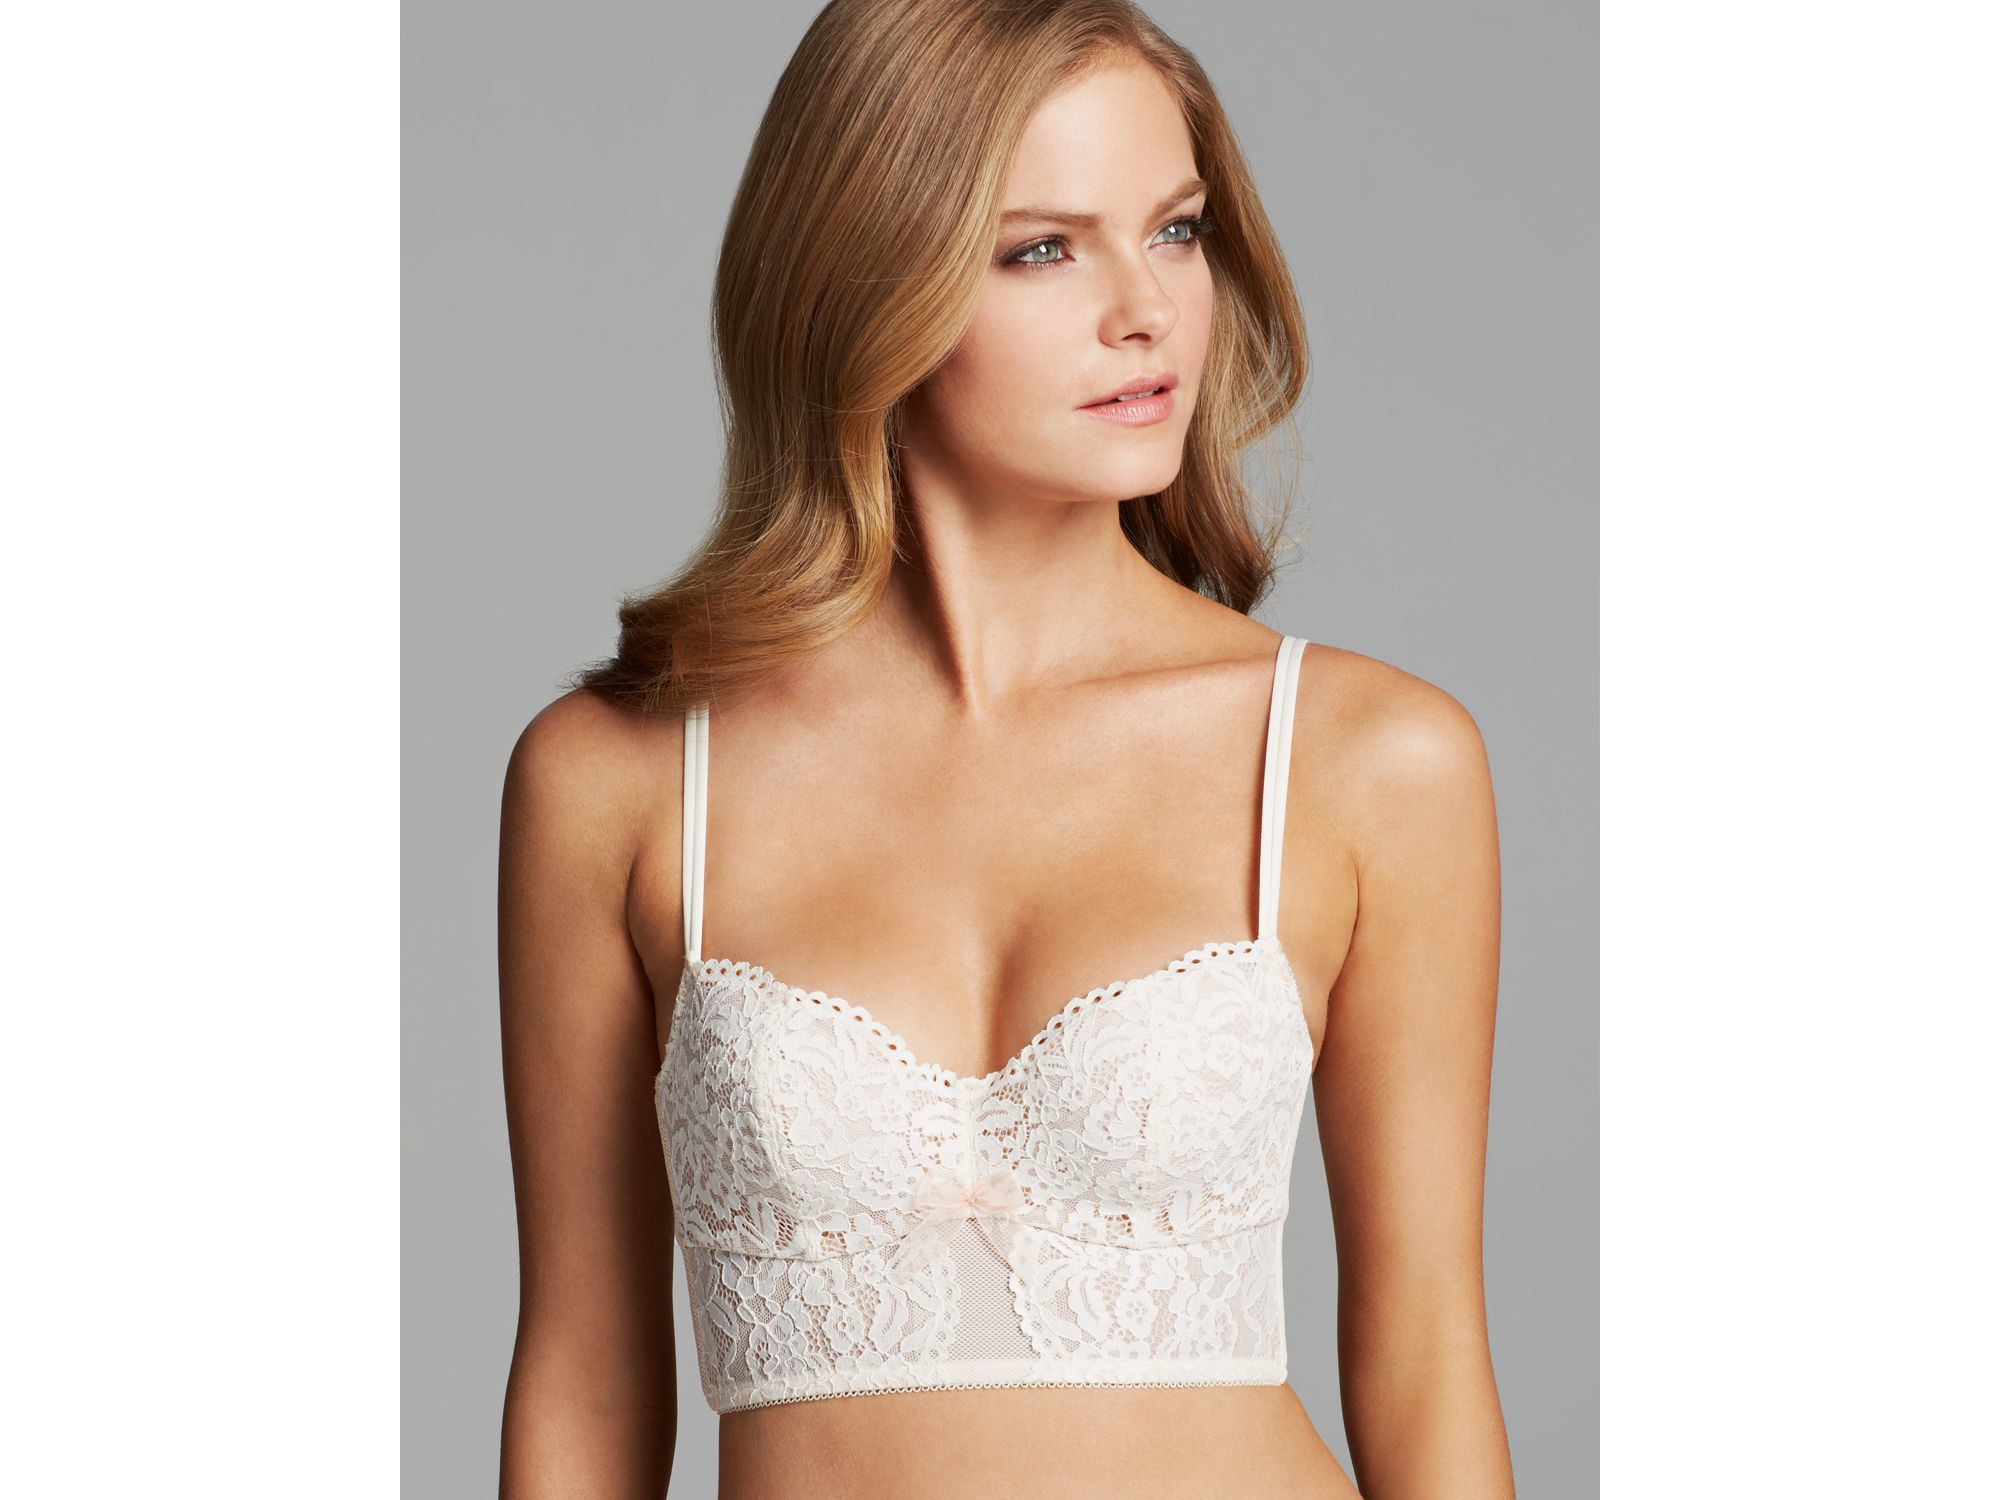 c10d371f8c Lyst - B.tempt d Bra - Ciao Bella Long Line  959244 in White